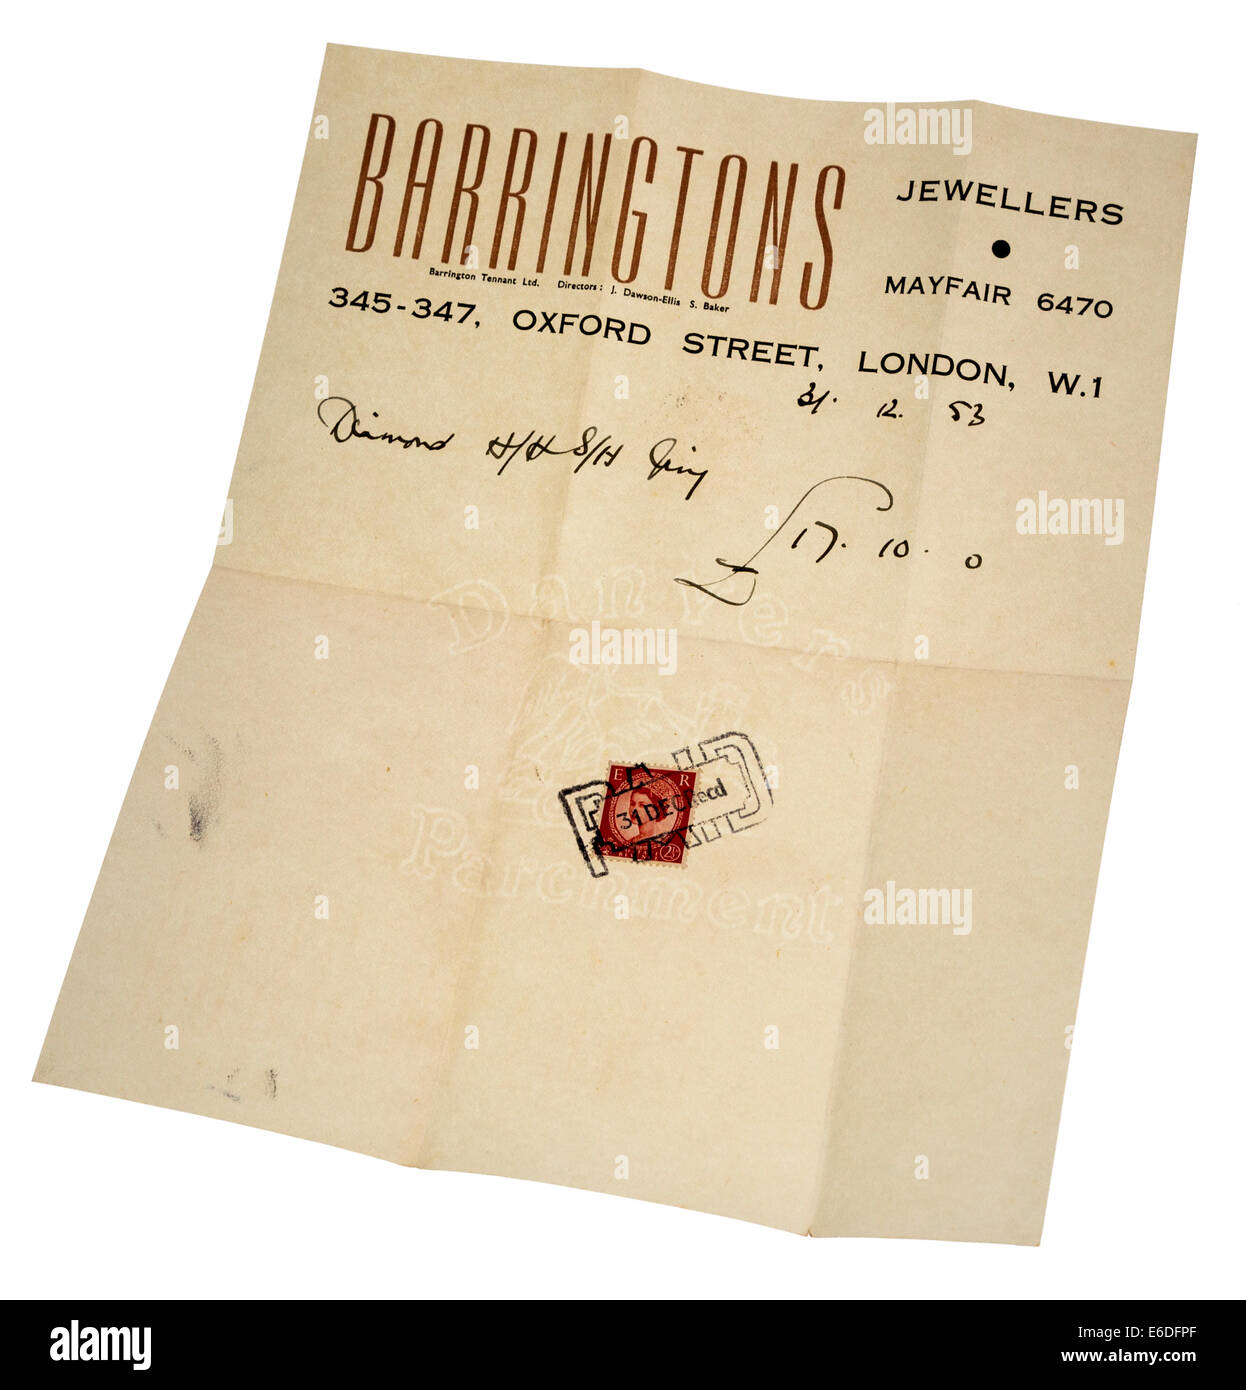 Receipt for jewelery diamond ring dated 1953, London, England, UK; Alan Calford's wedding ring purchase for - Stock Image